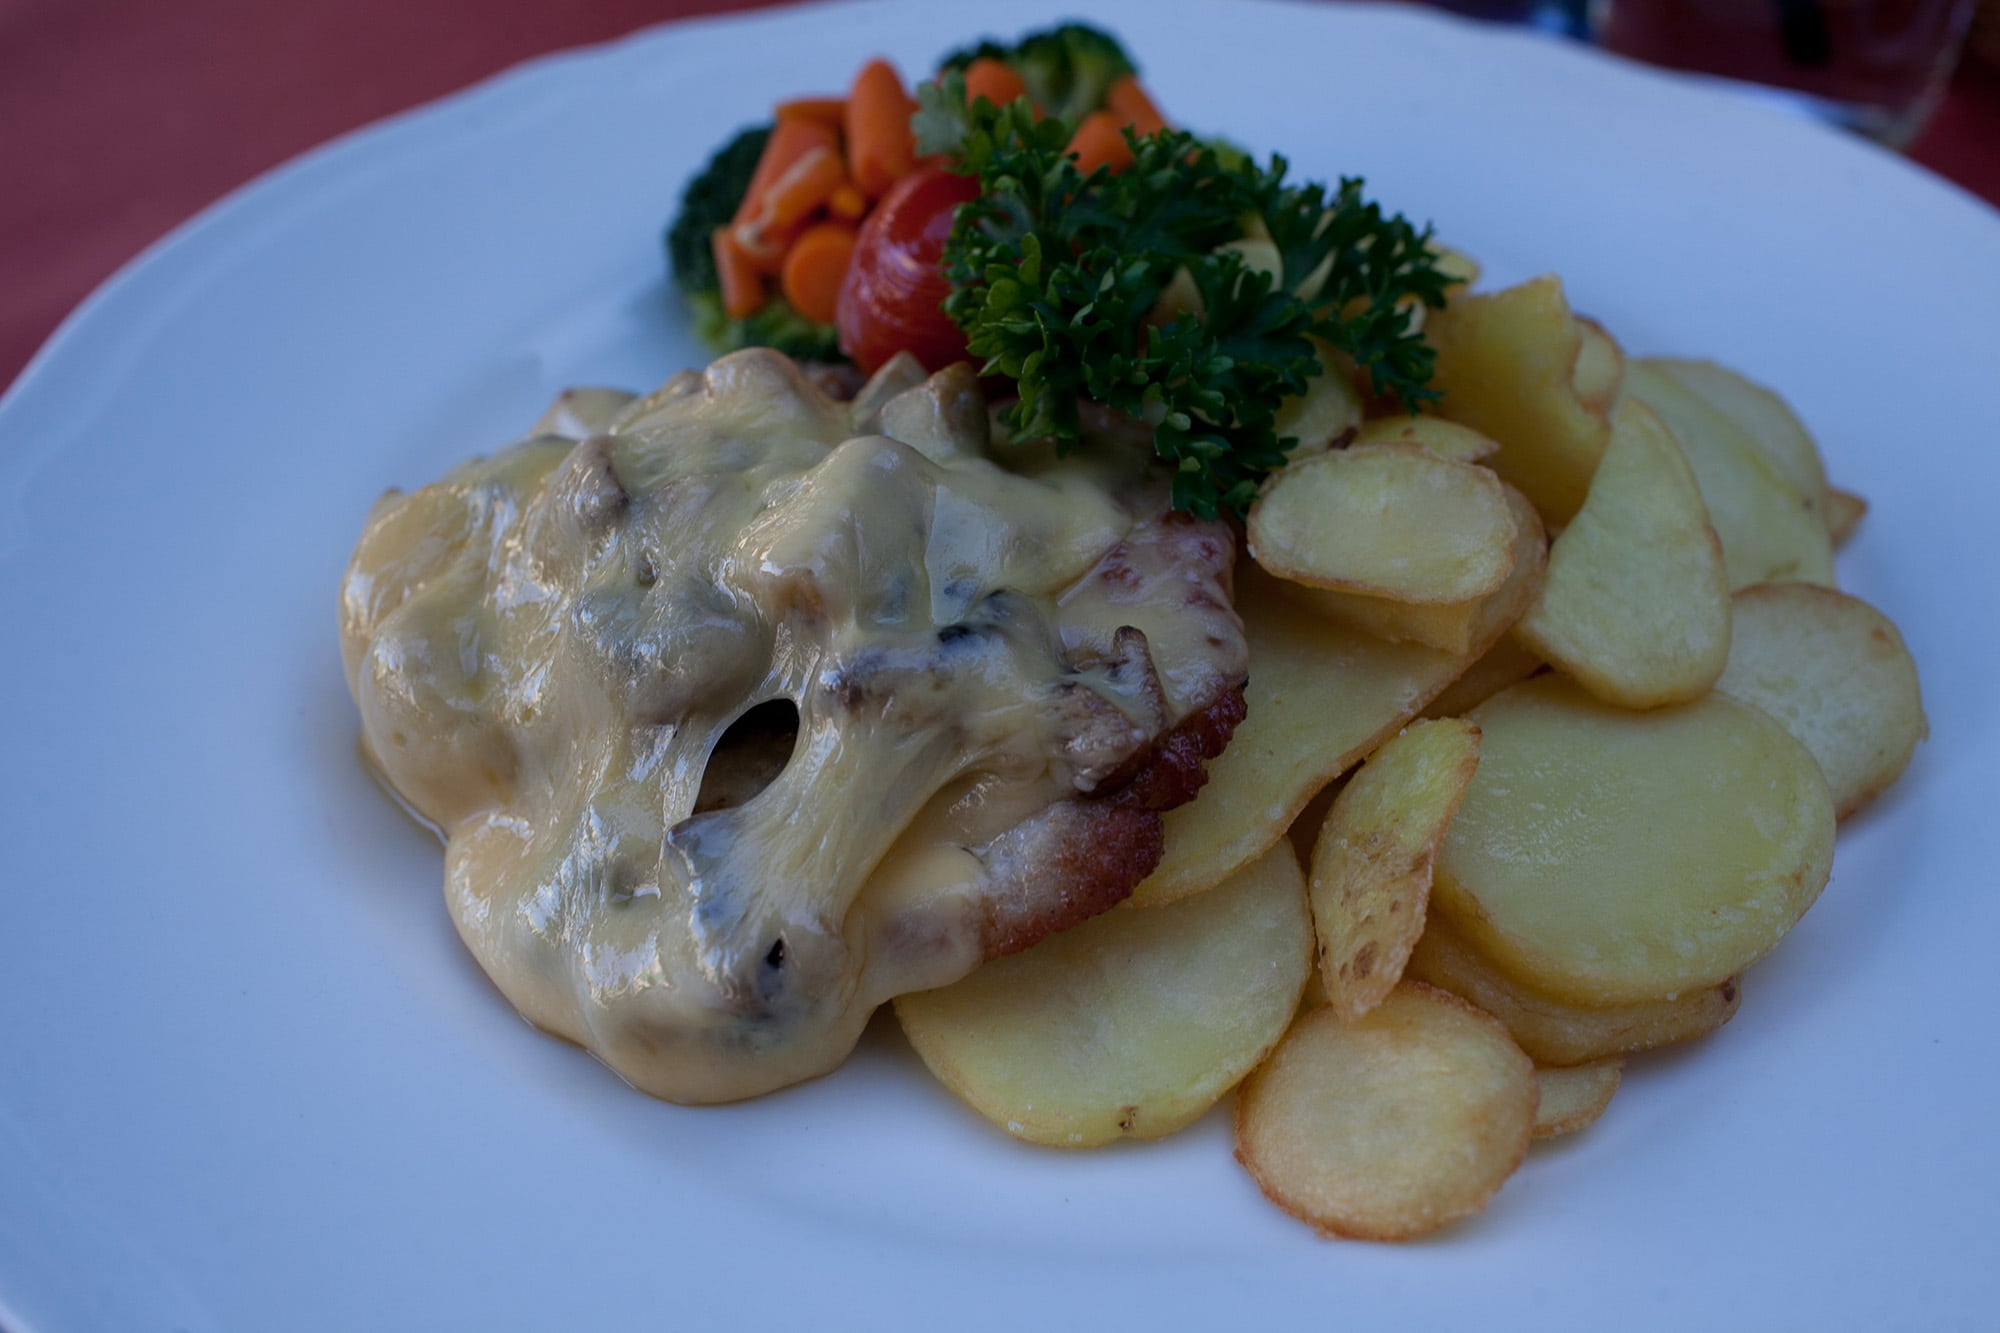 Pork cutlet with mushrooms and cheese in Krakow, Poland.